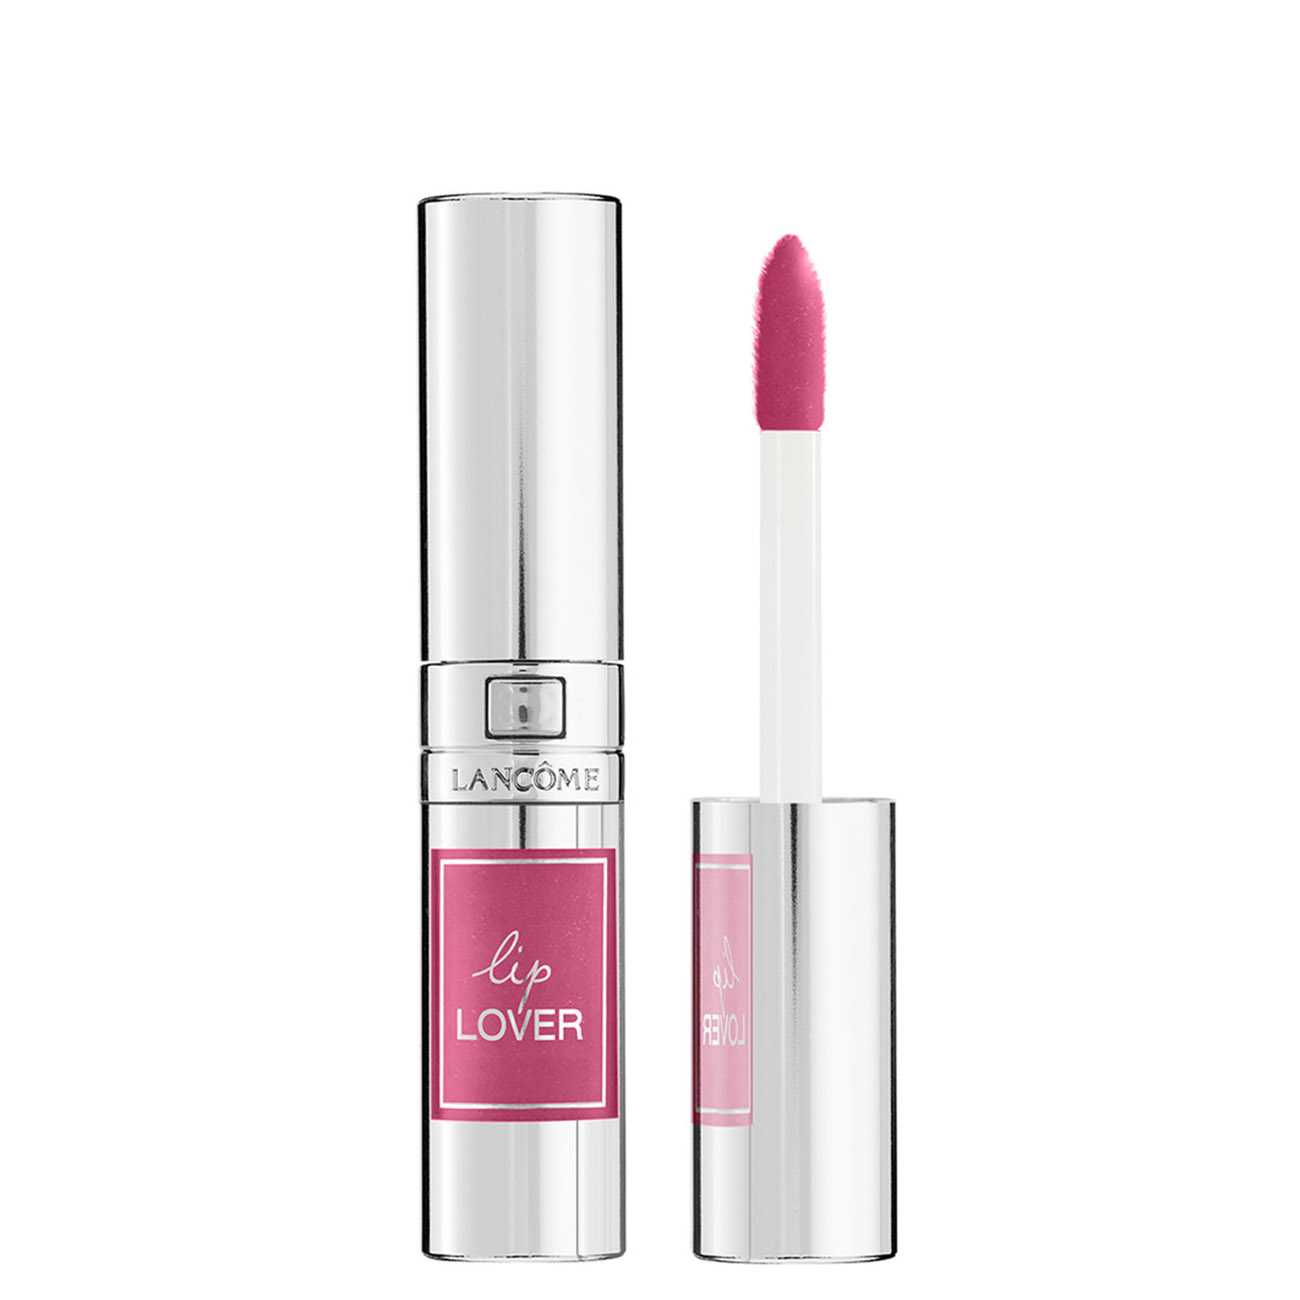 Lip Lover 4 G Rose Des Nymphes 333 Lancôme imagine 2021 bestvalue.eu